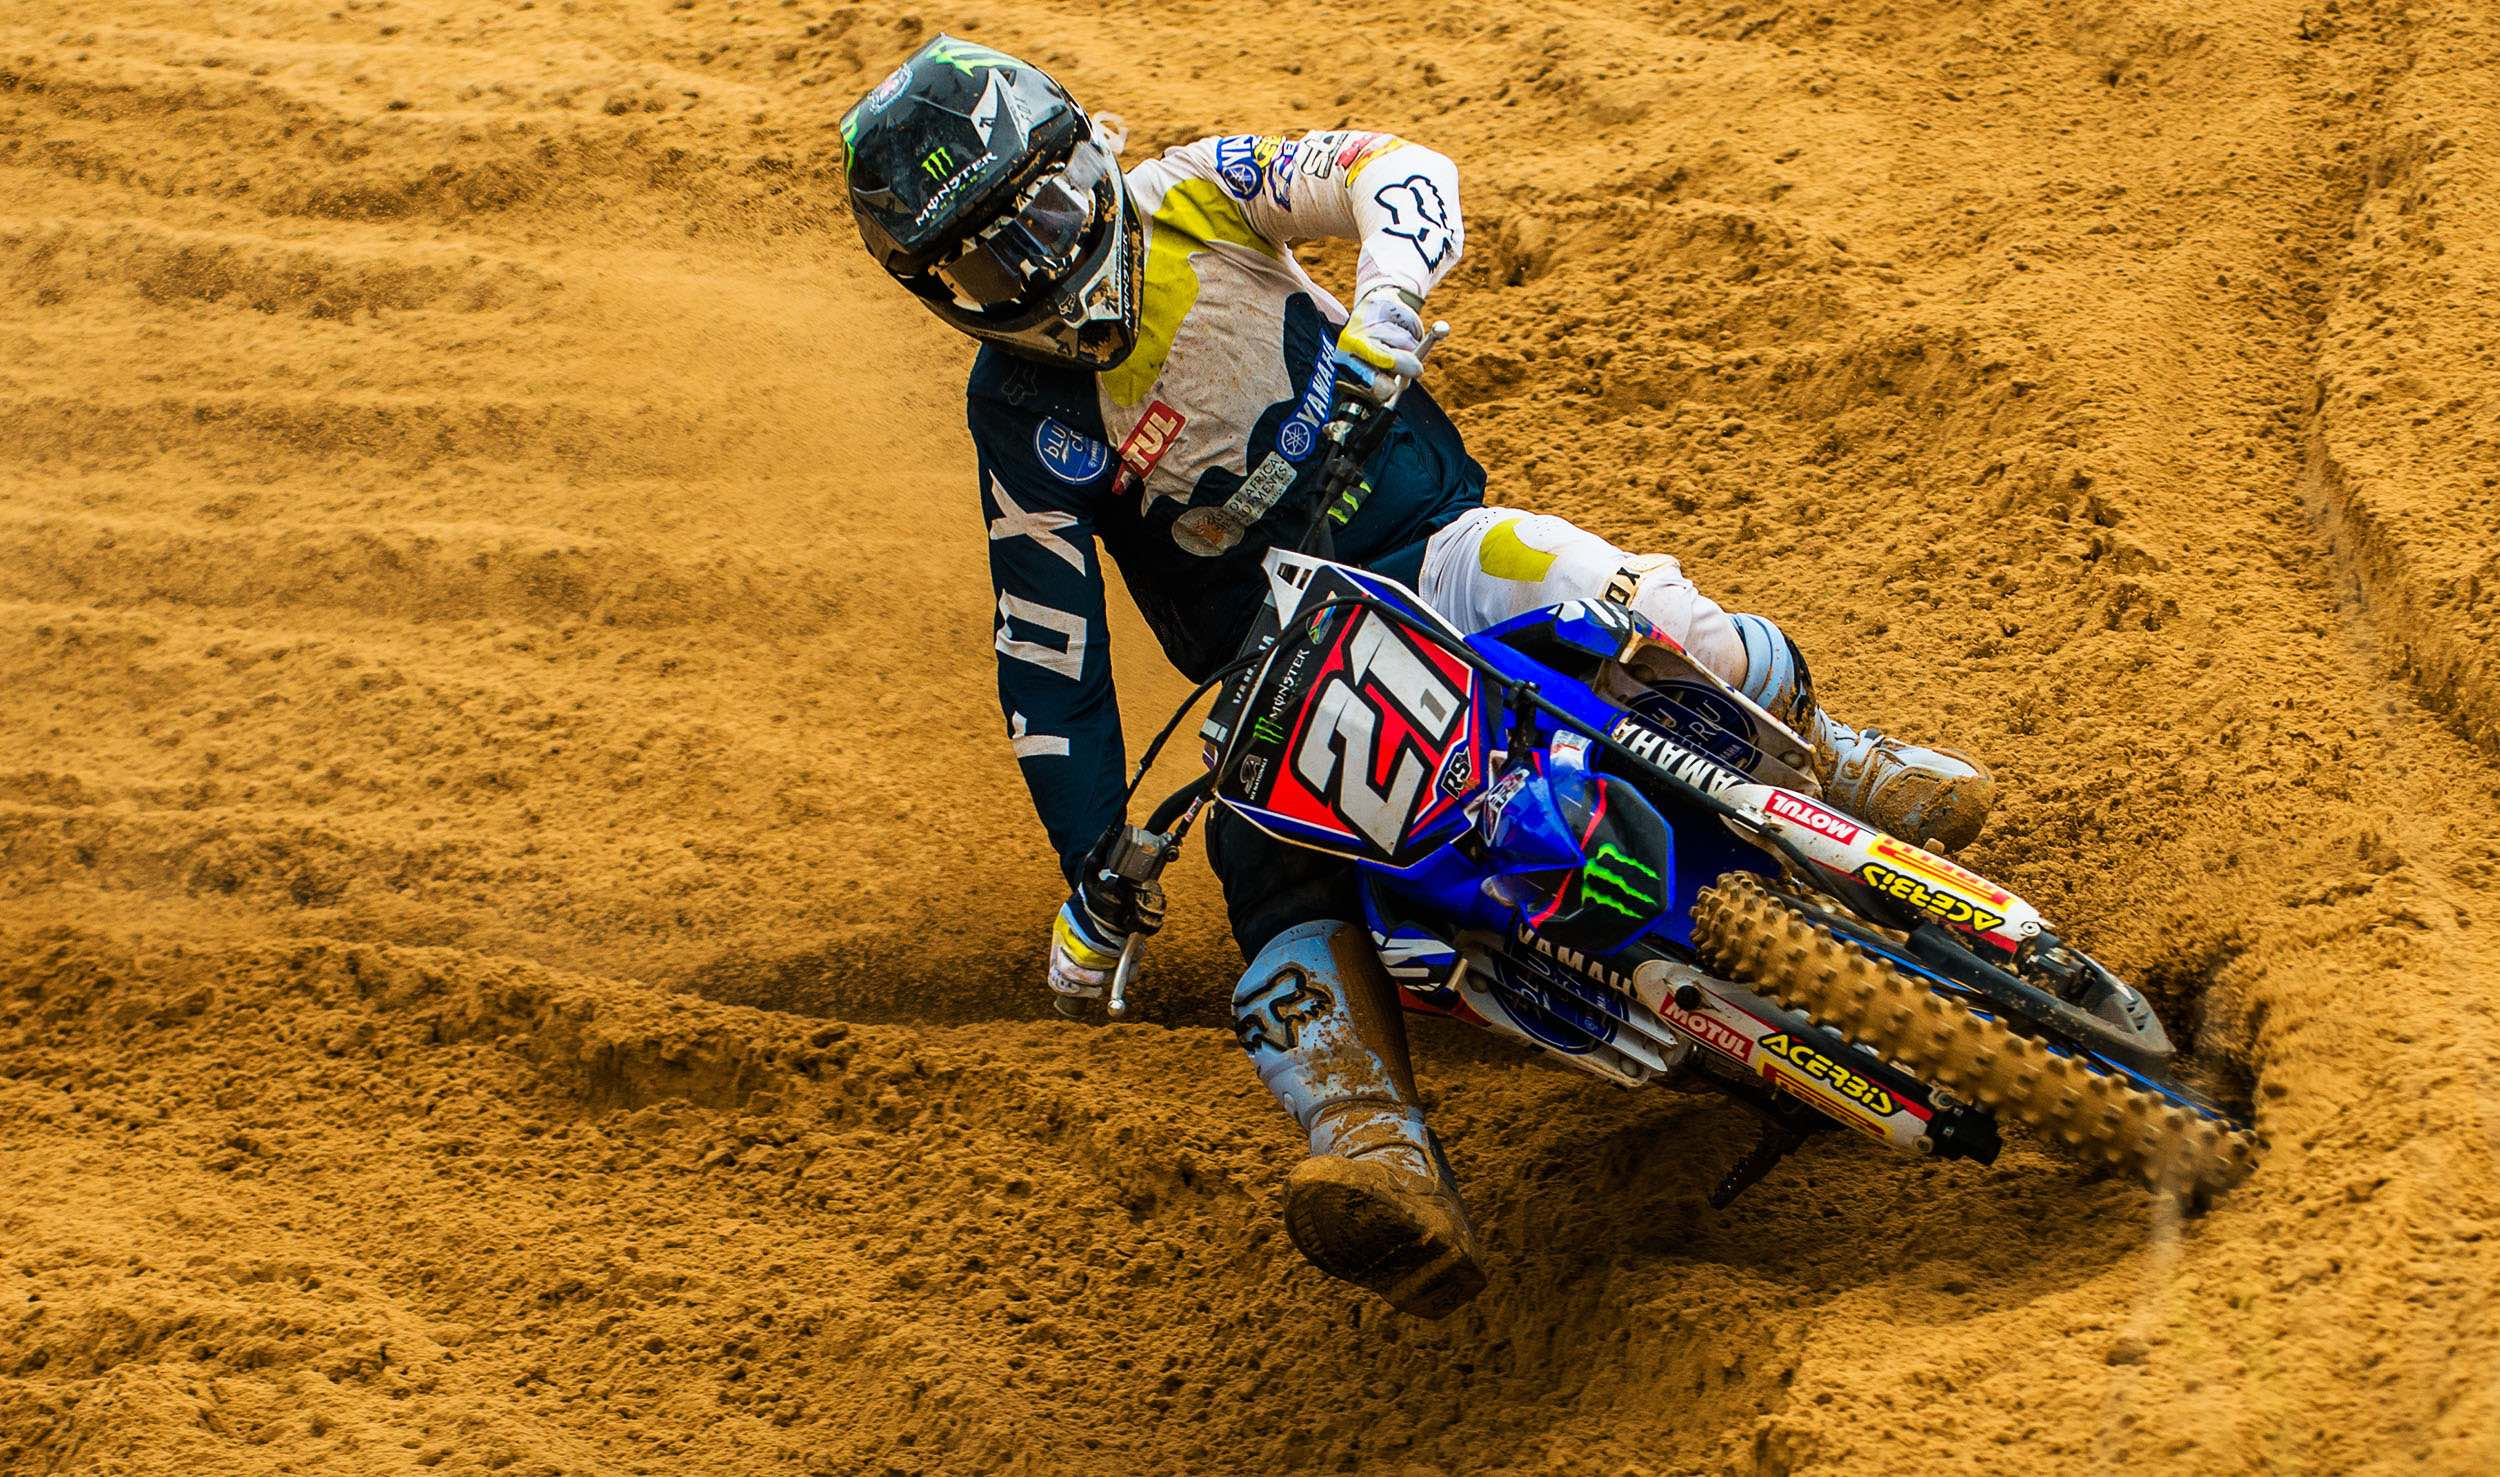 Race Report from Round 1 of the 2018 TRP Distributors SA Motocross National Championship from Rover MX